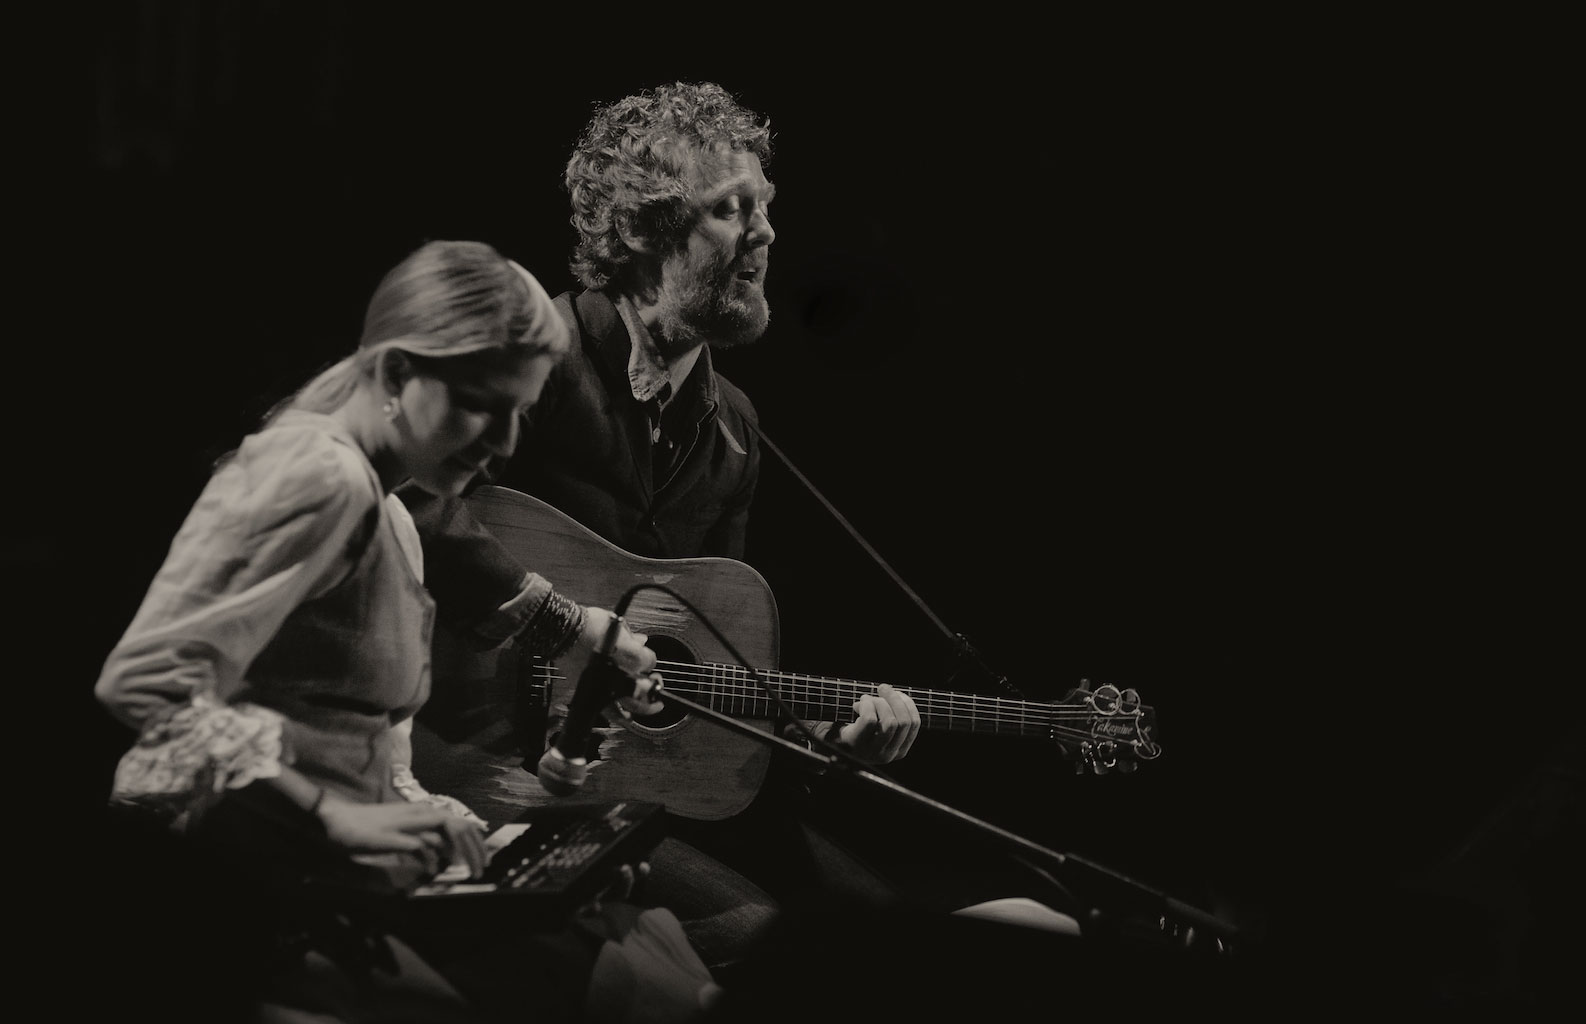 IMG_8914--marketa irglova and glen hansard : the swell season-Version-2.jpg